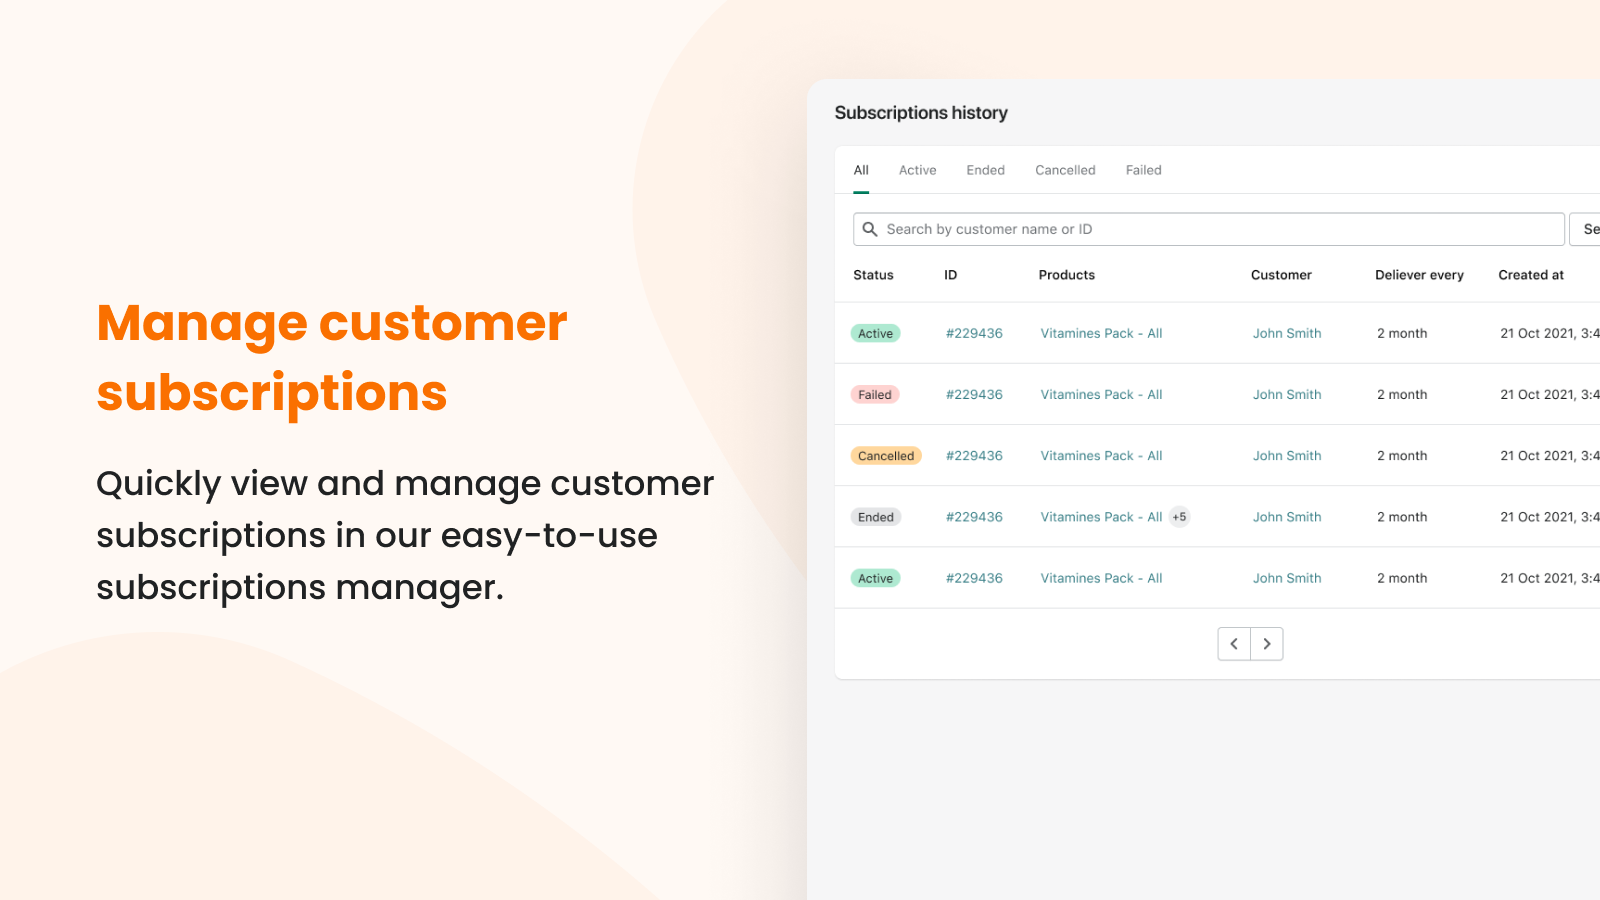 Subscriptions manager